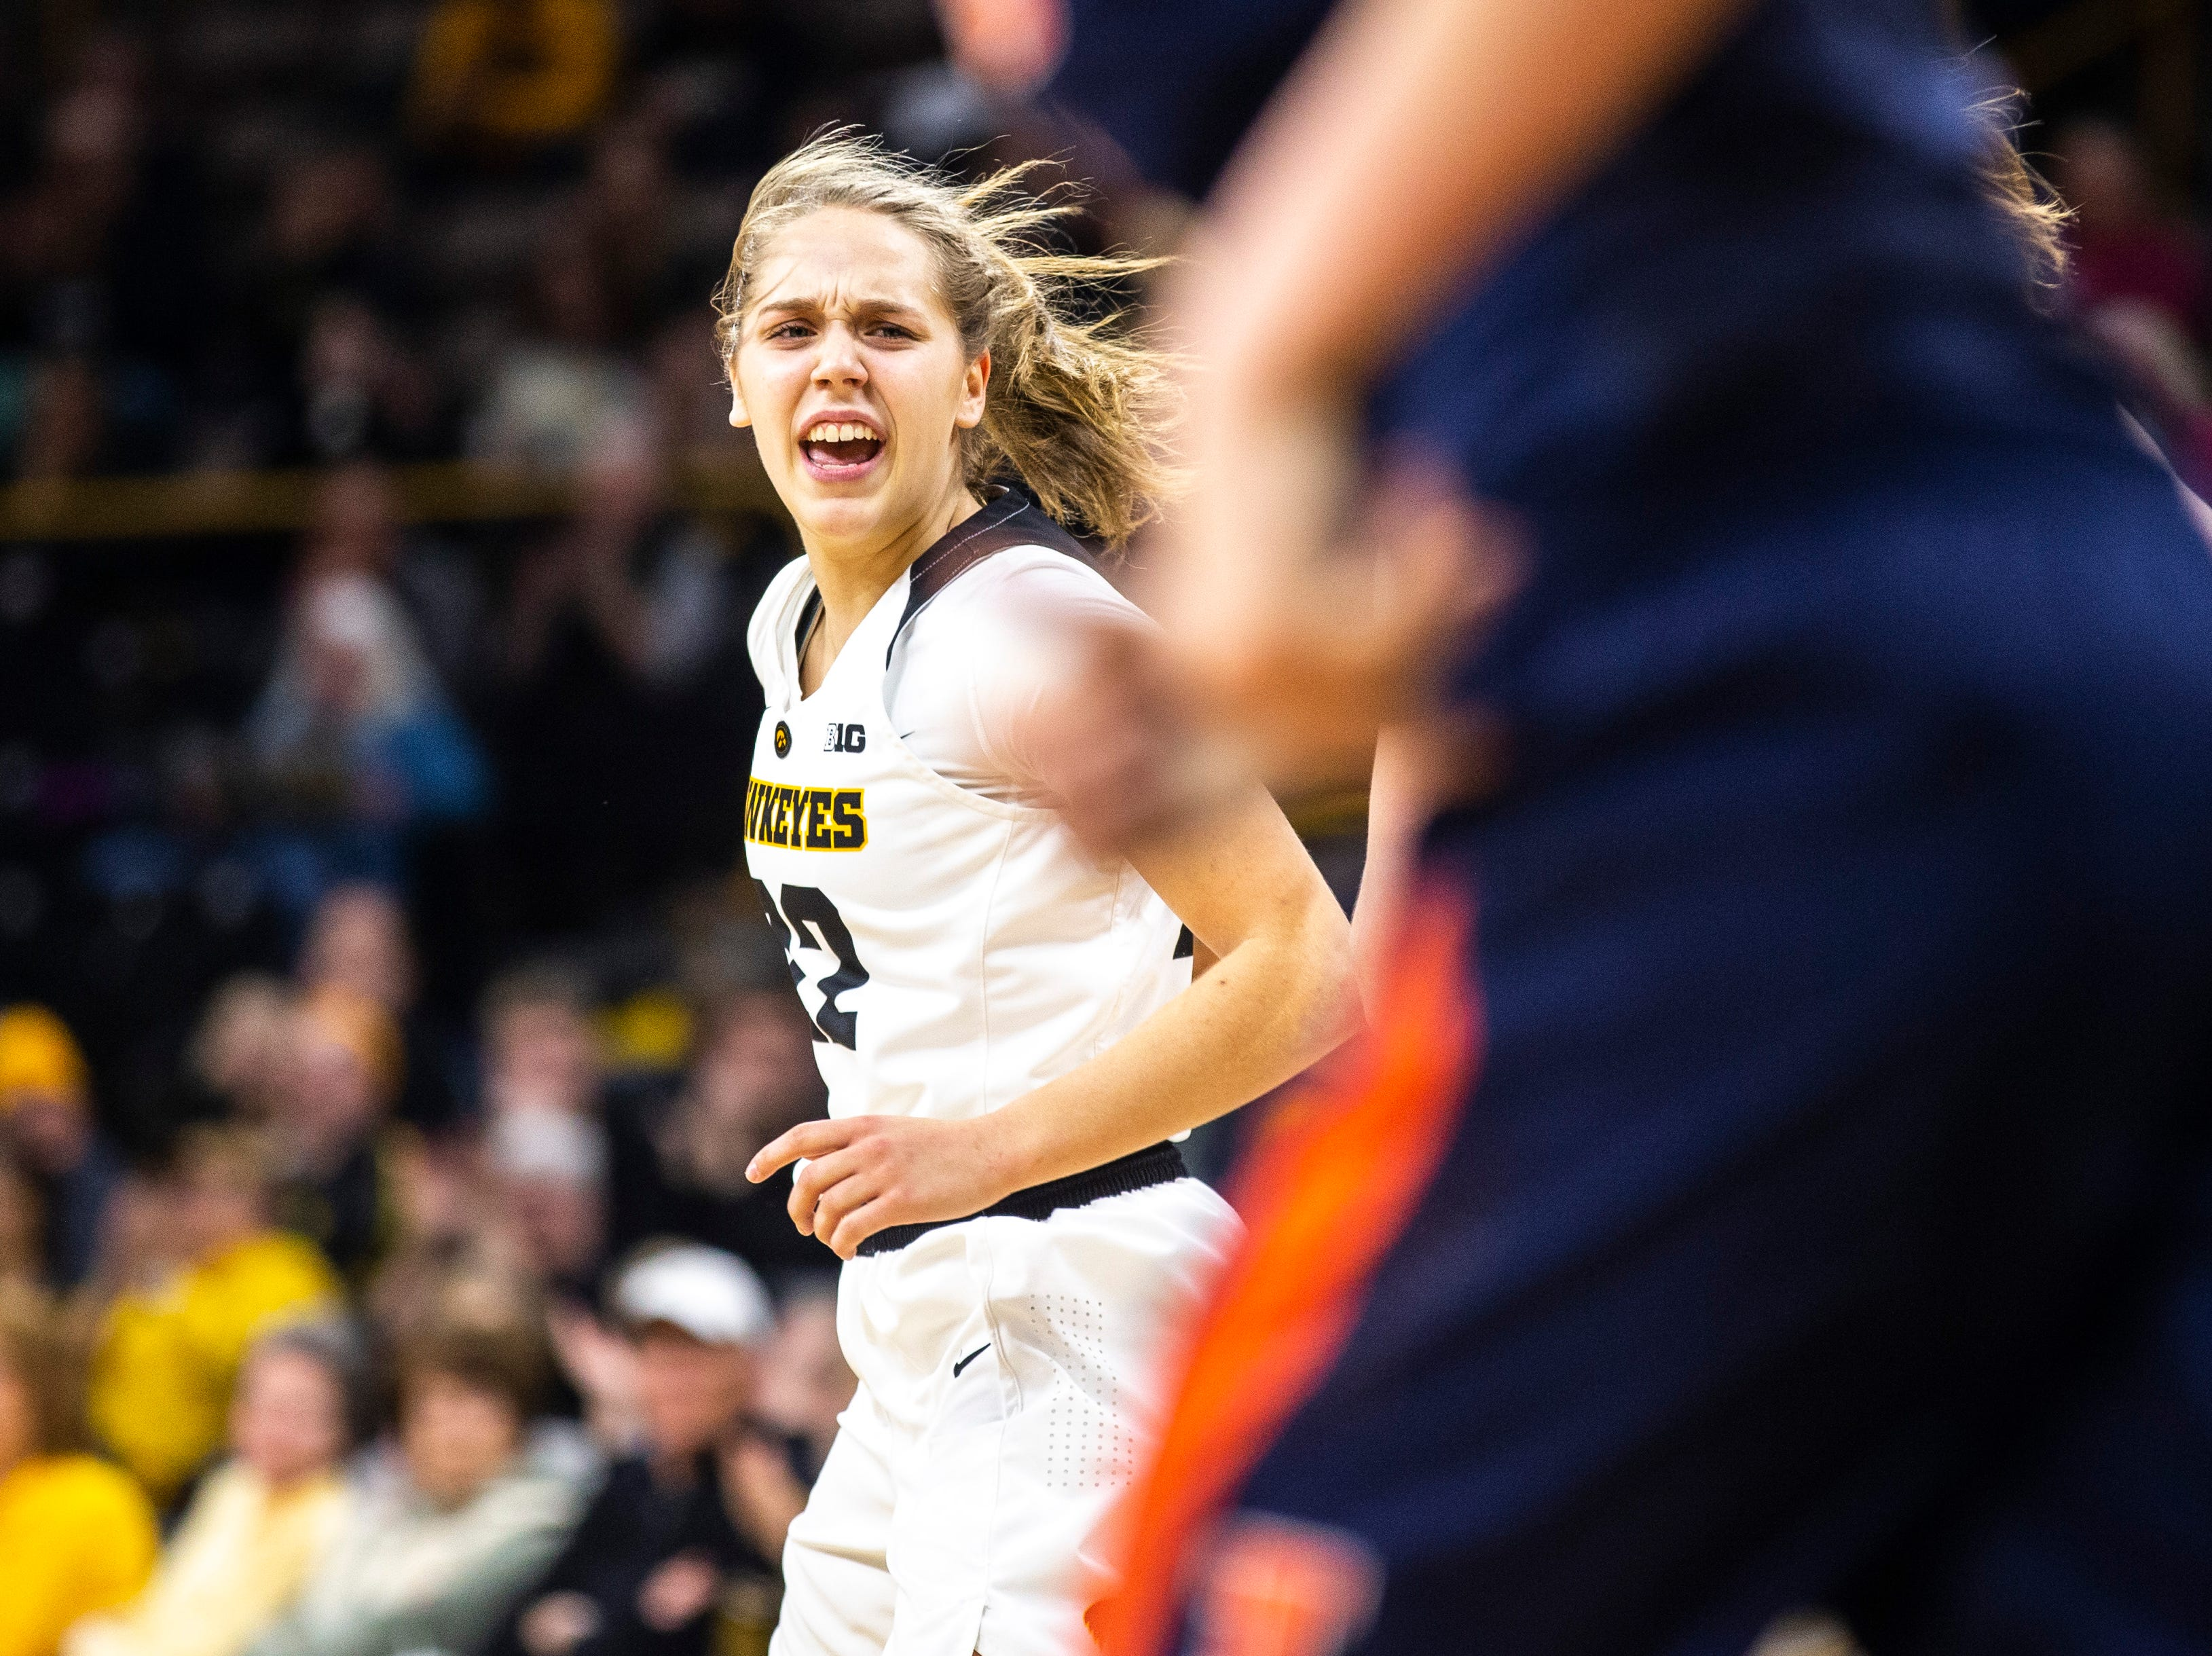 Iowa guard Kathleen Doyle (22) reacts after making a layup during a NCAA Big Ten Conference women's basketball game on Thursday, Feb. 14, 2019 at Carver-Hawkeye Arena in Iowa City, Iowa.